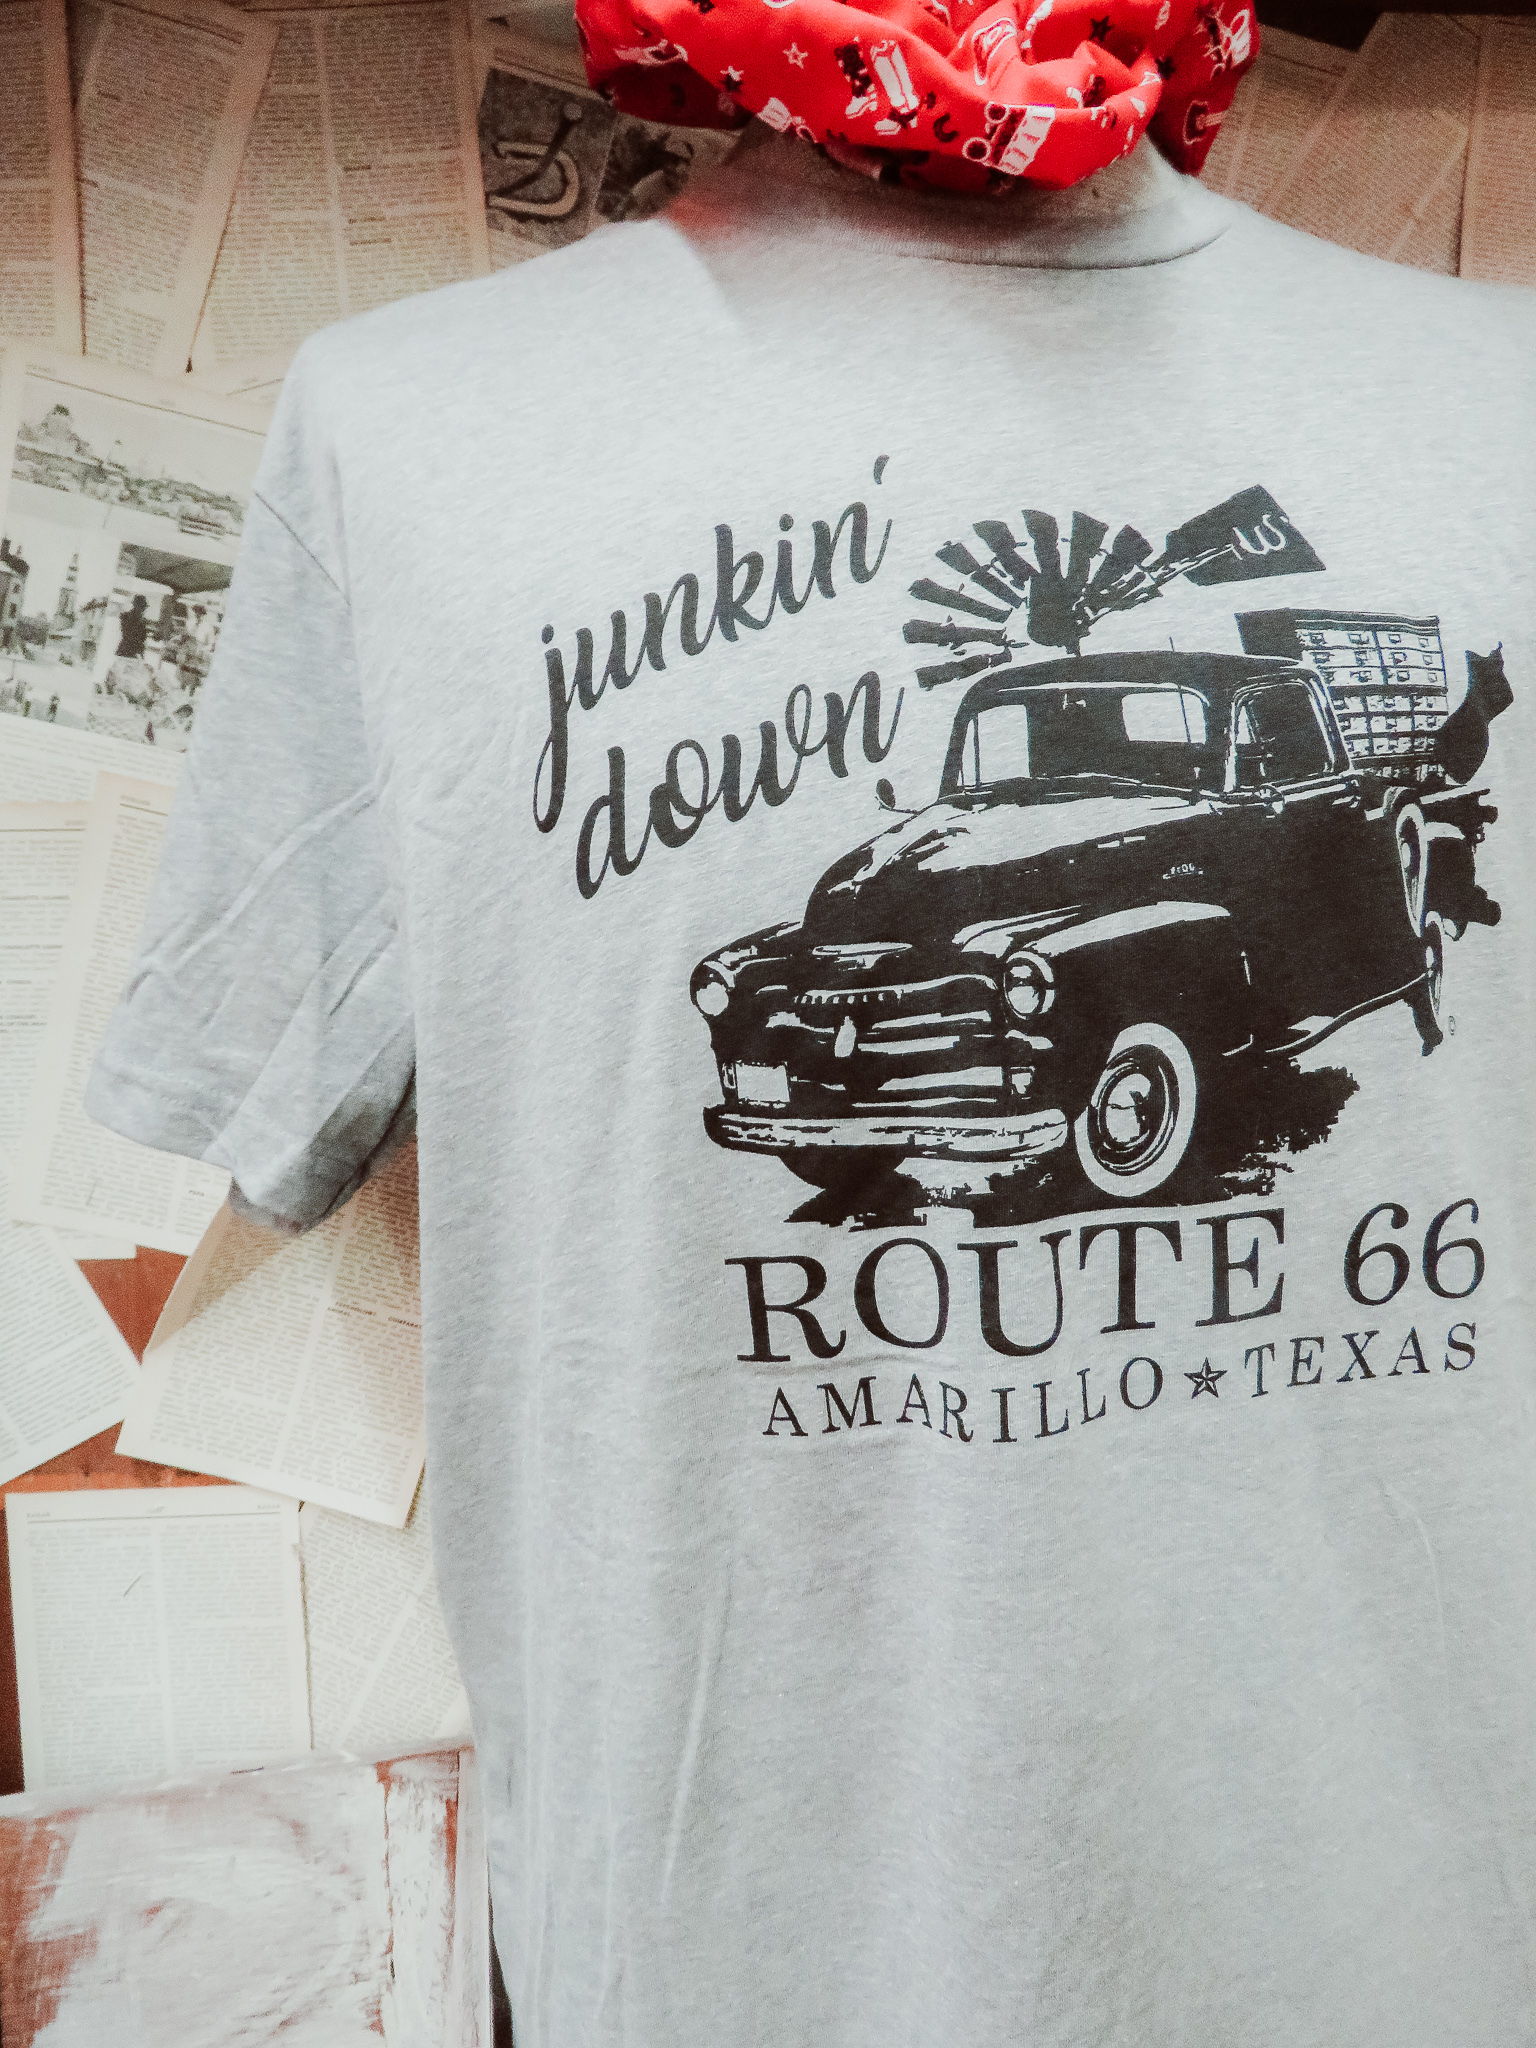 Tees - Adding a new piece to your travel wardrobe might be just what you're looking for! Several vendors carry clothing specific to Amarillo + Route 66.